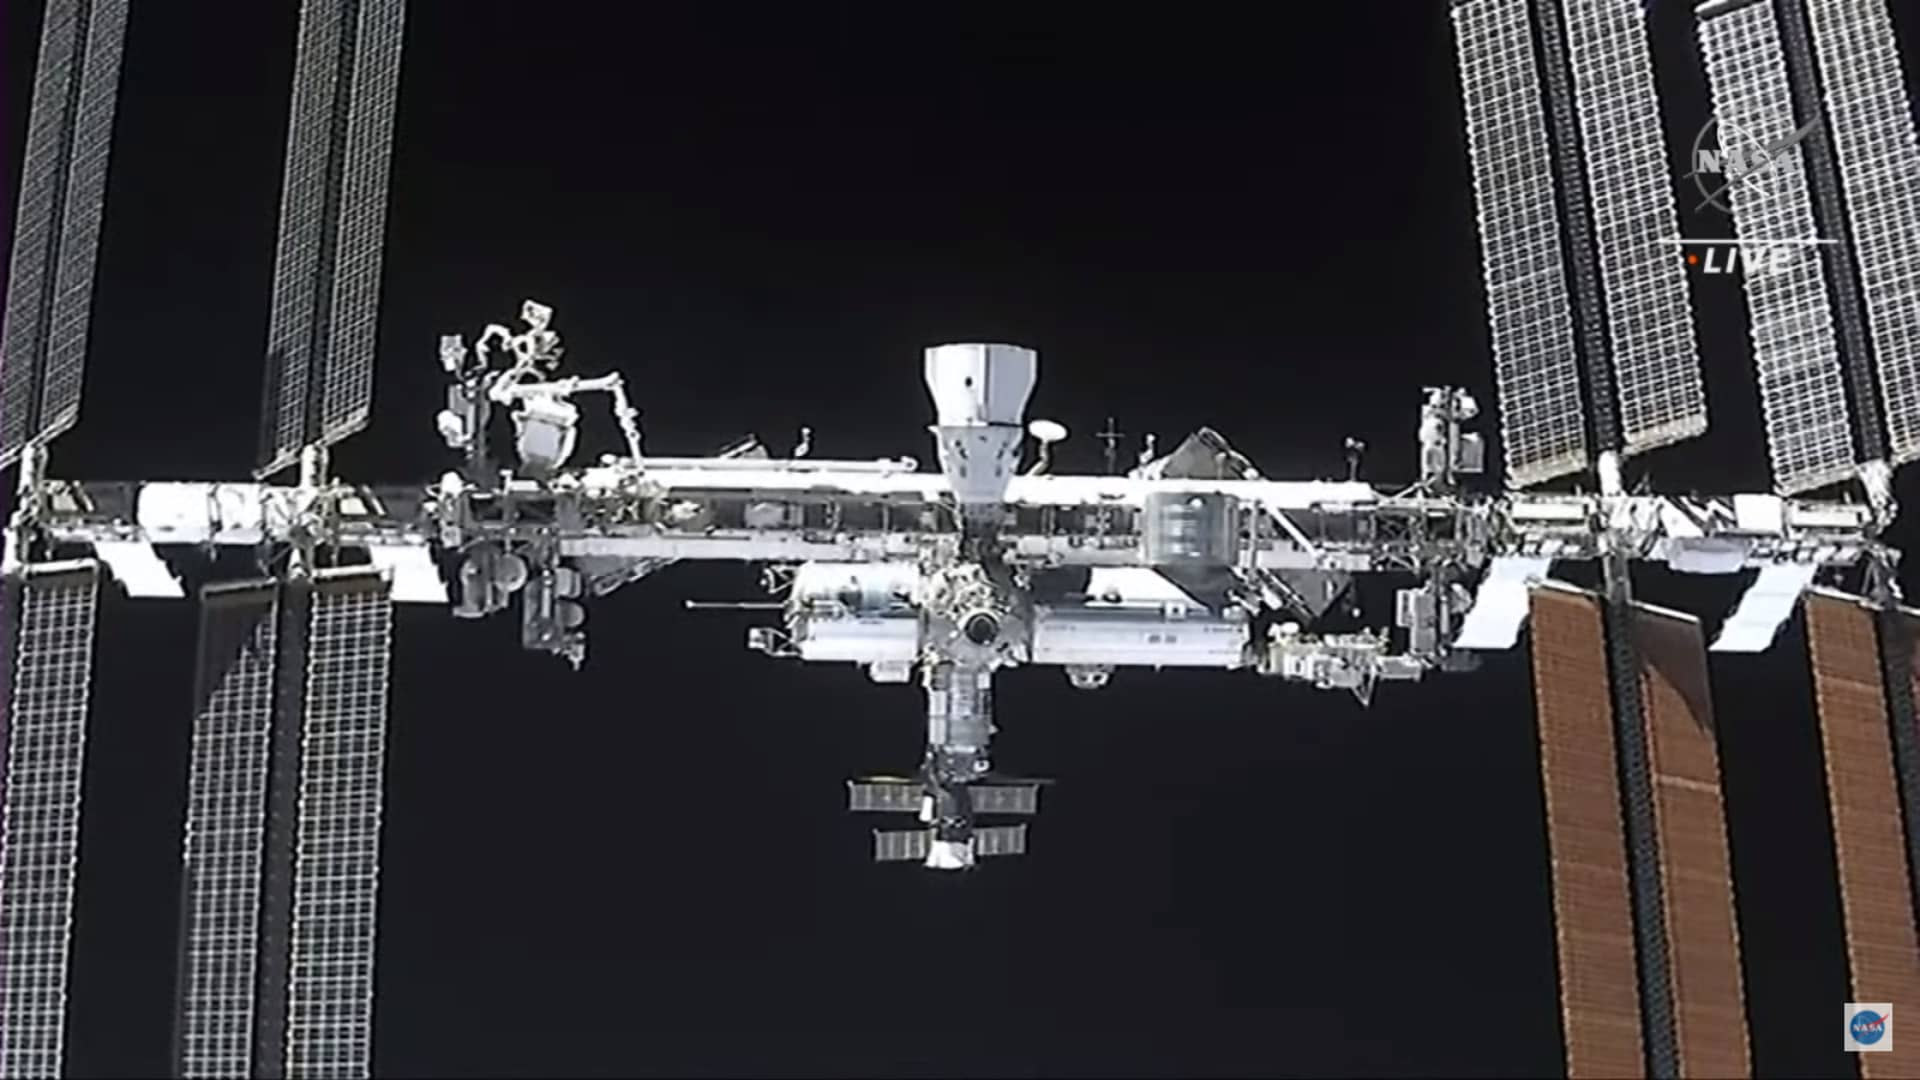 The view from SpaceX's Crew Dragon spacecraft Endeavour of the International Space Station, as well as the company's Crew Dragon spacecraft Resilience, as the capsule approached to dock on April 24, 2021.